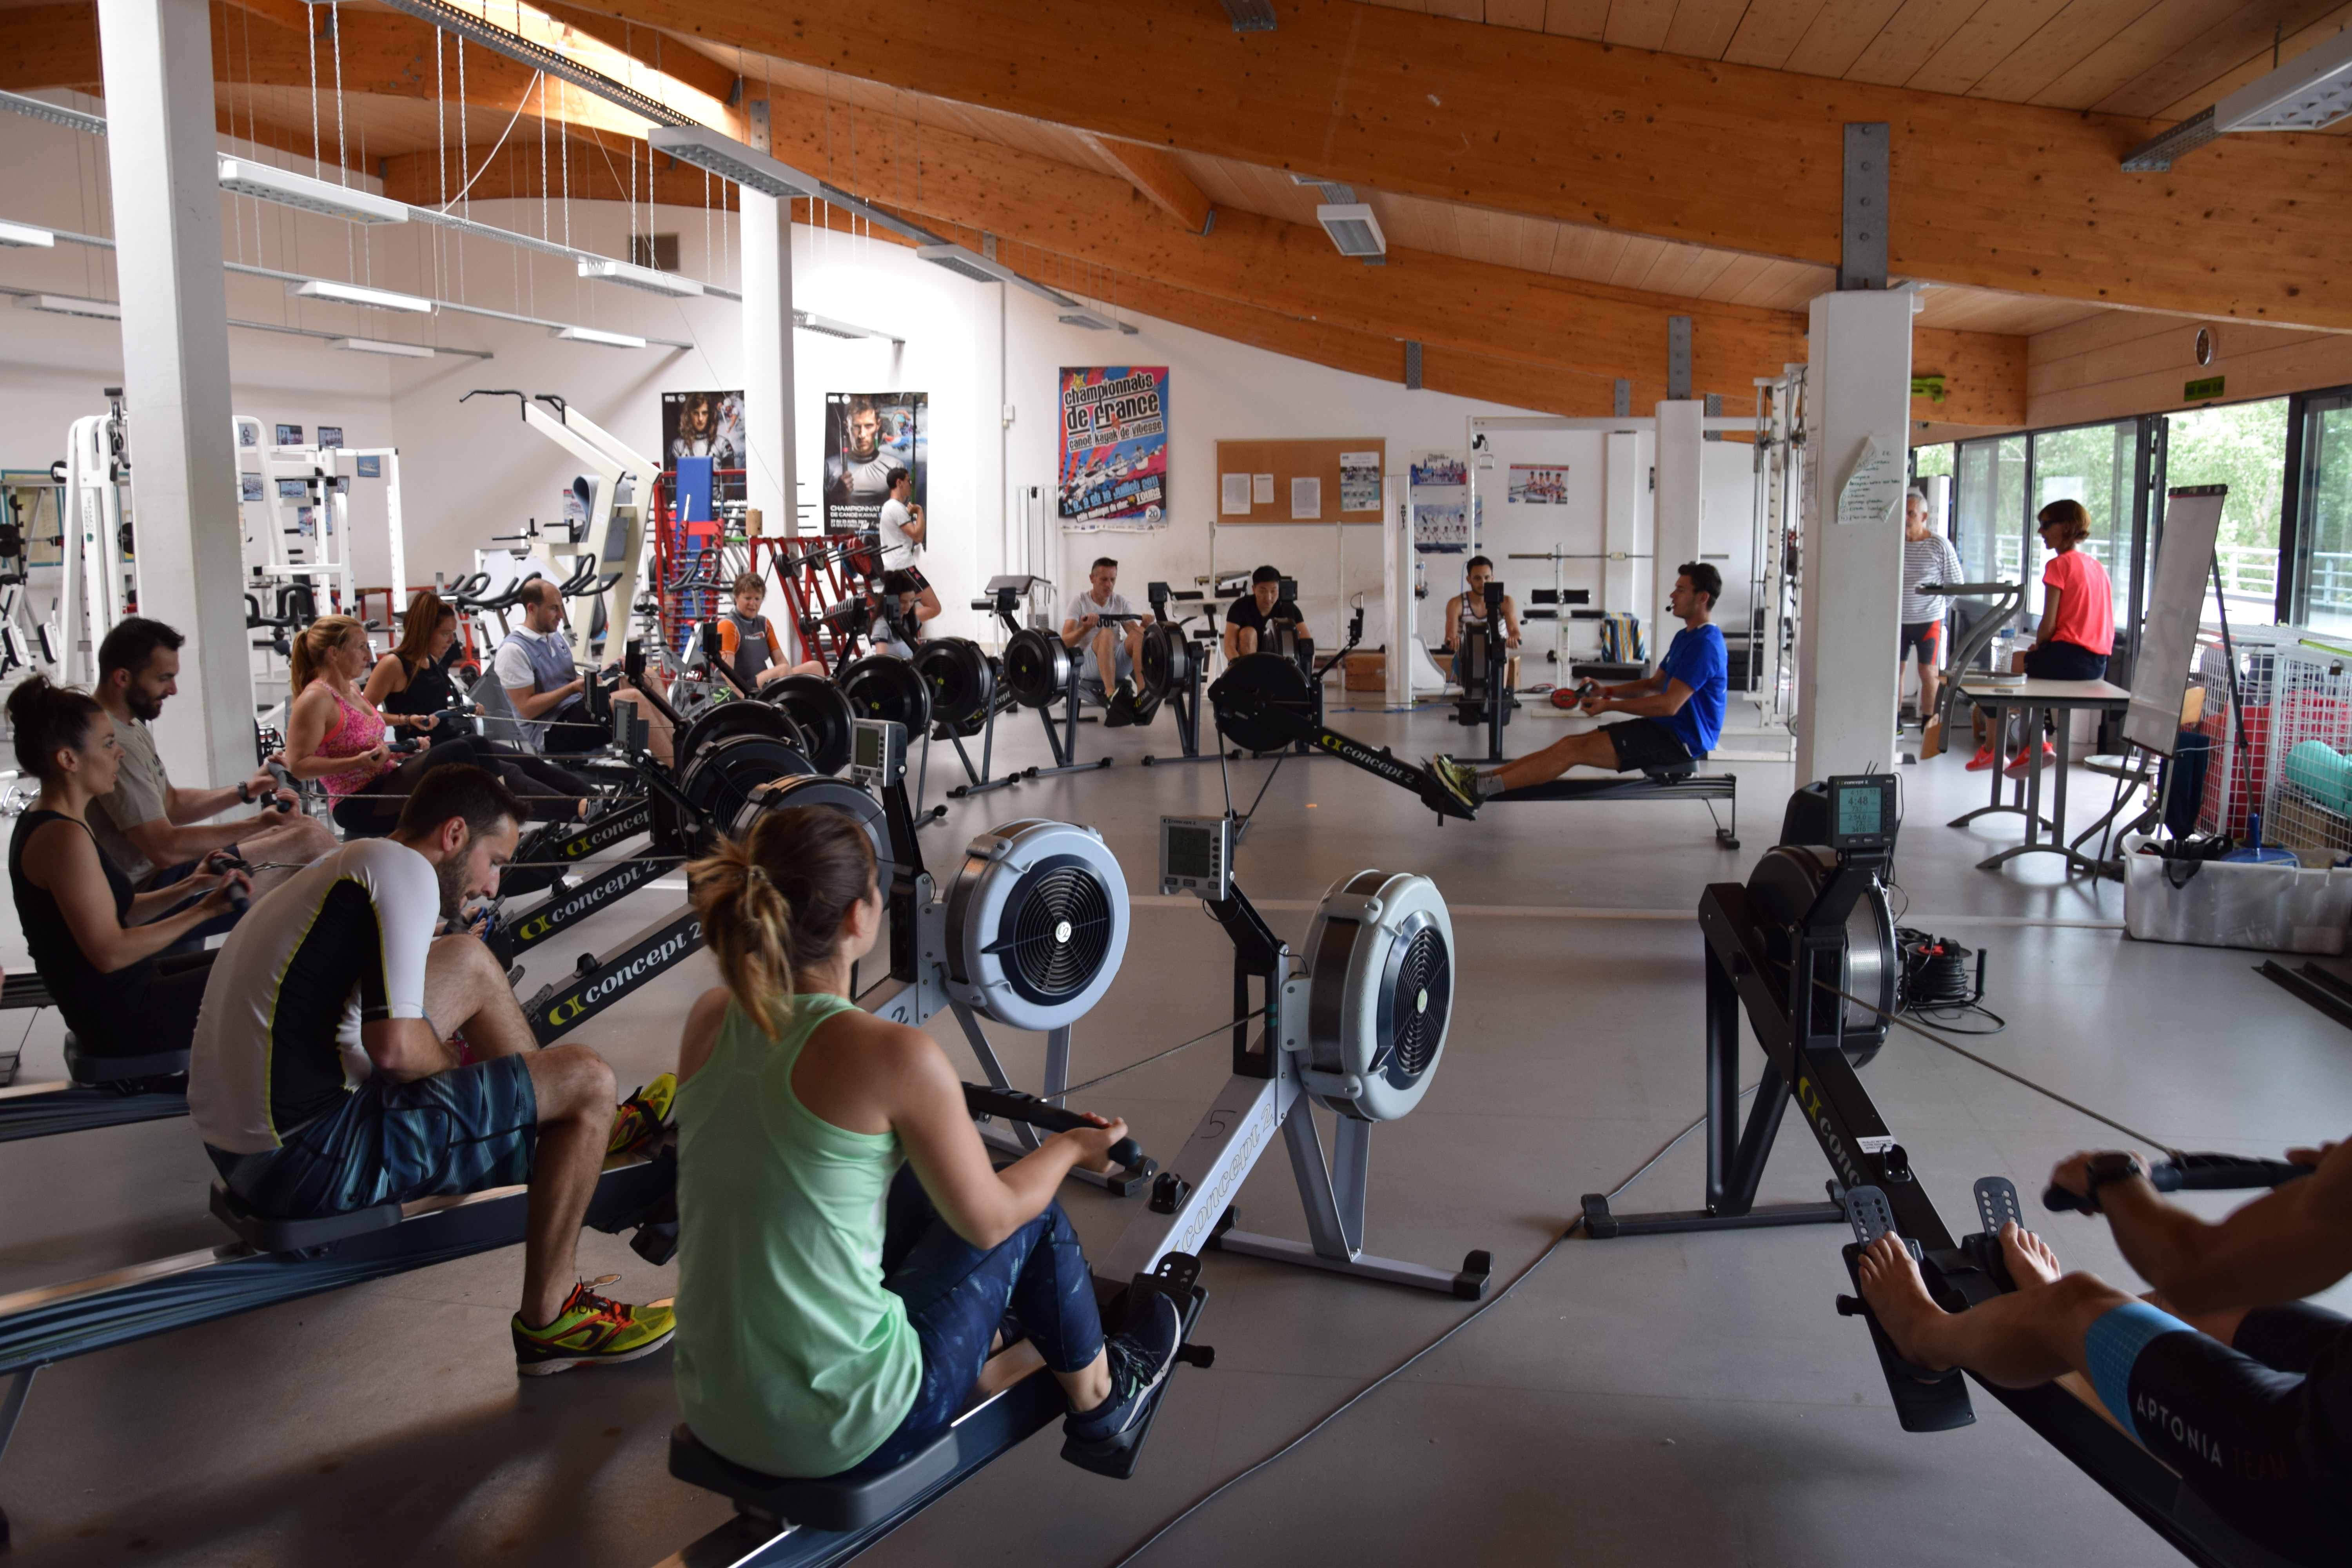 Fitness Entreprise - Row4Fit 10 pers